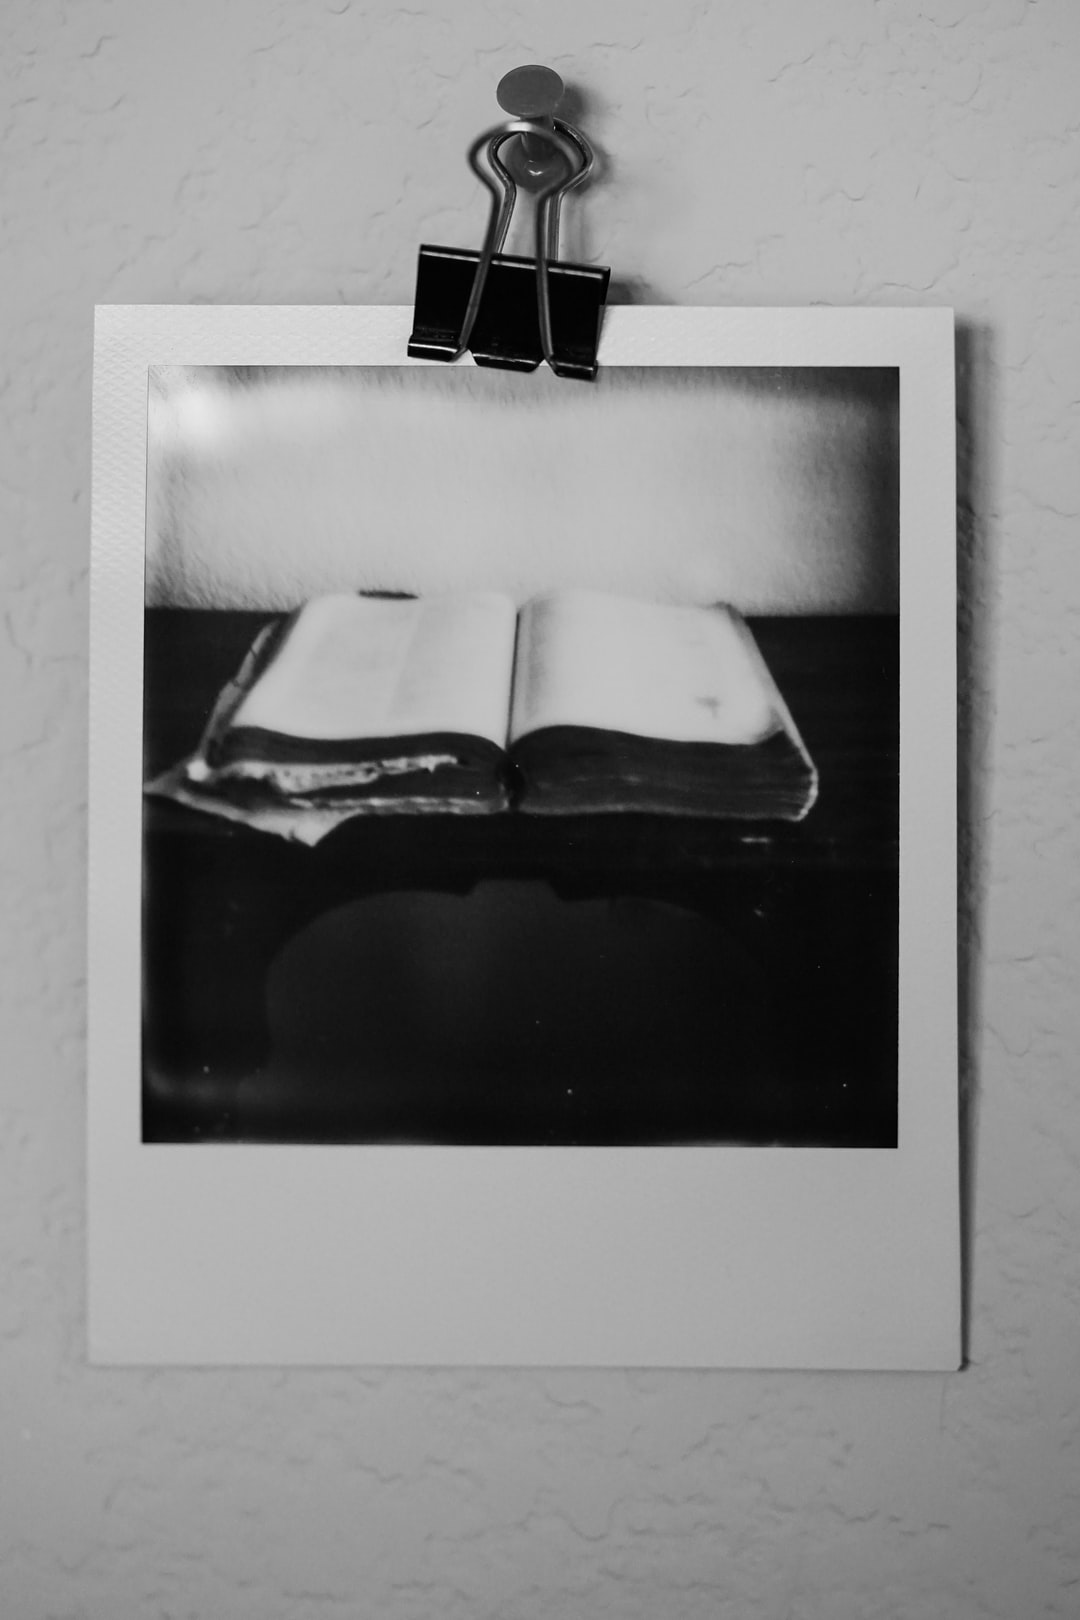 Black and white Polaroid instant film photograph of an open book on a table.